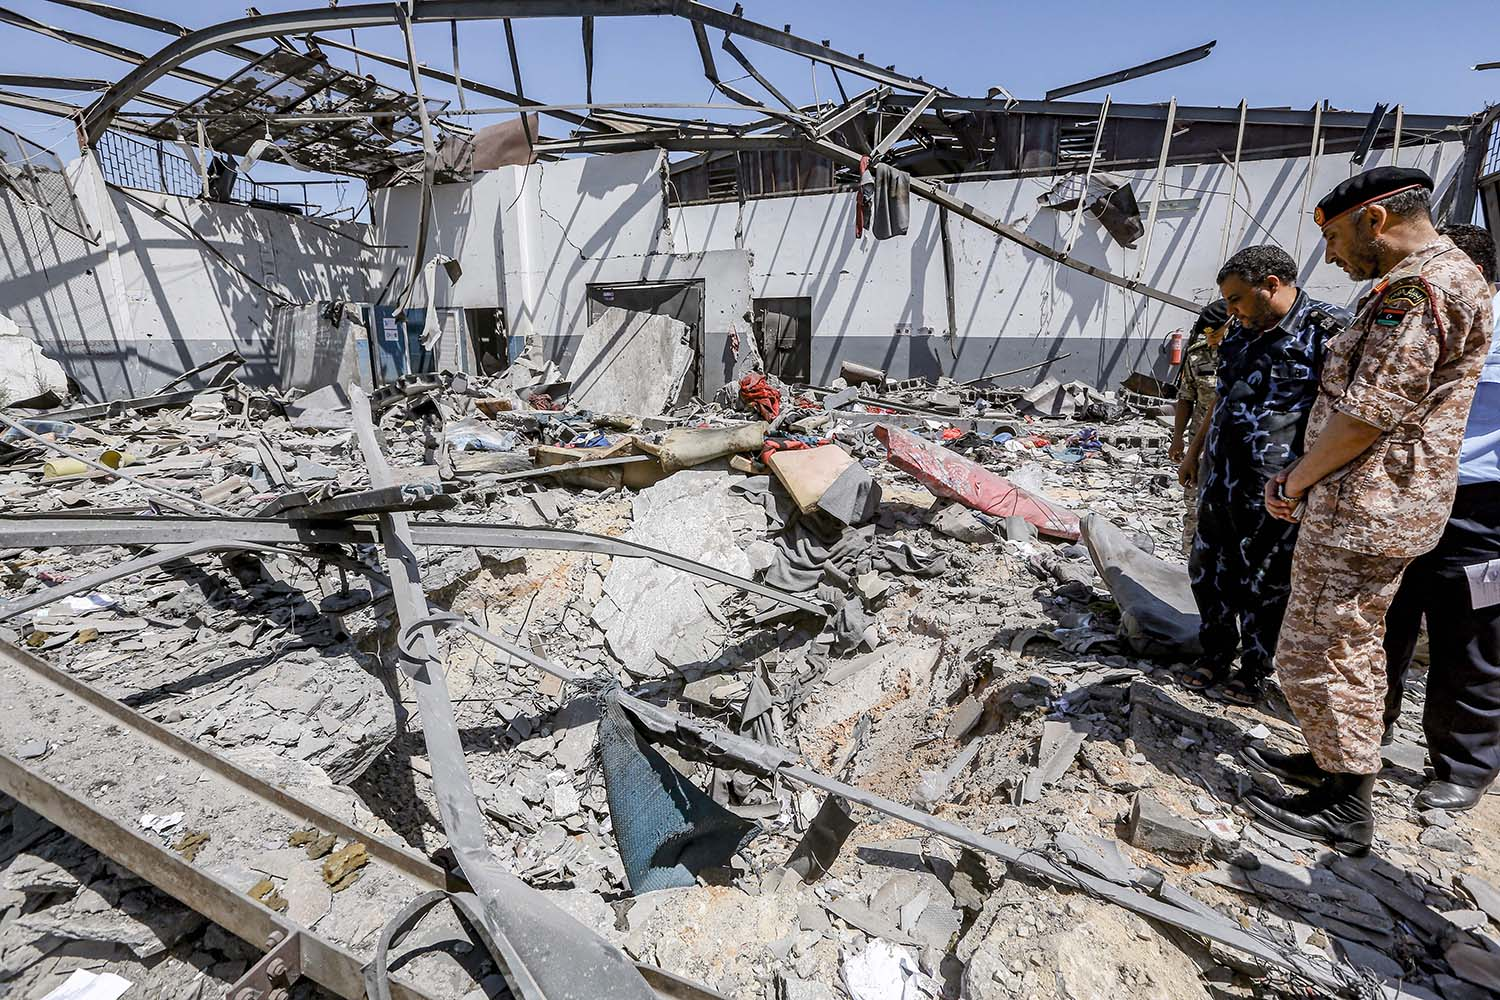 Libyan military officers inspect damage and debris at the Tajoura migrant detention center outside Tripoli after an aistrike on July 3, 2019.